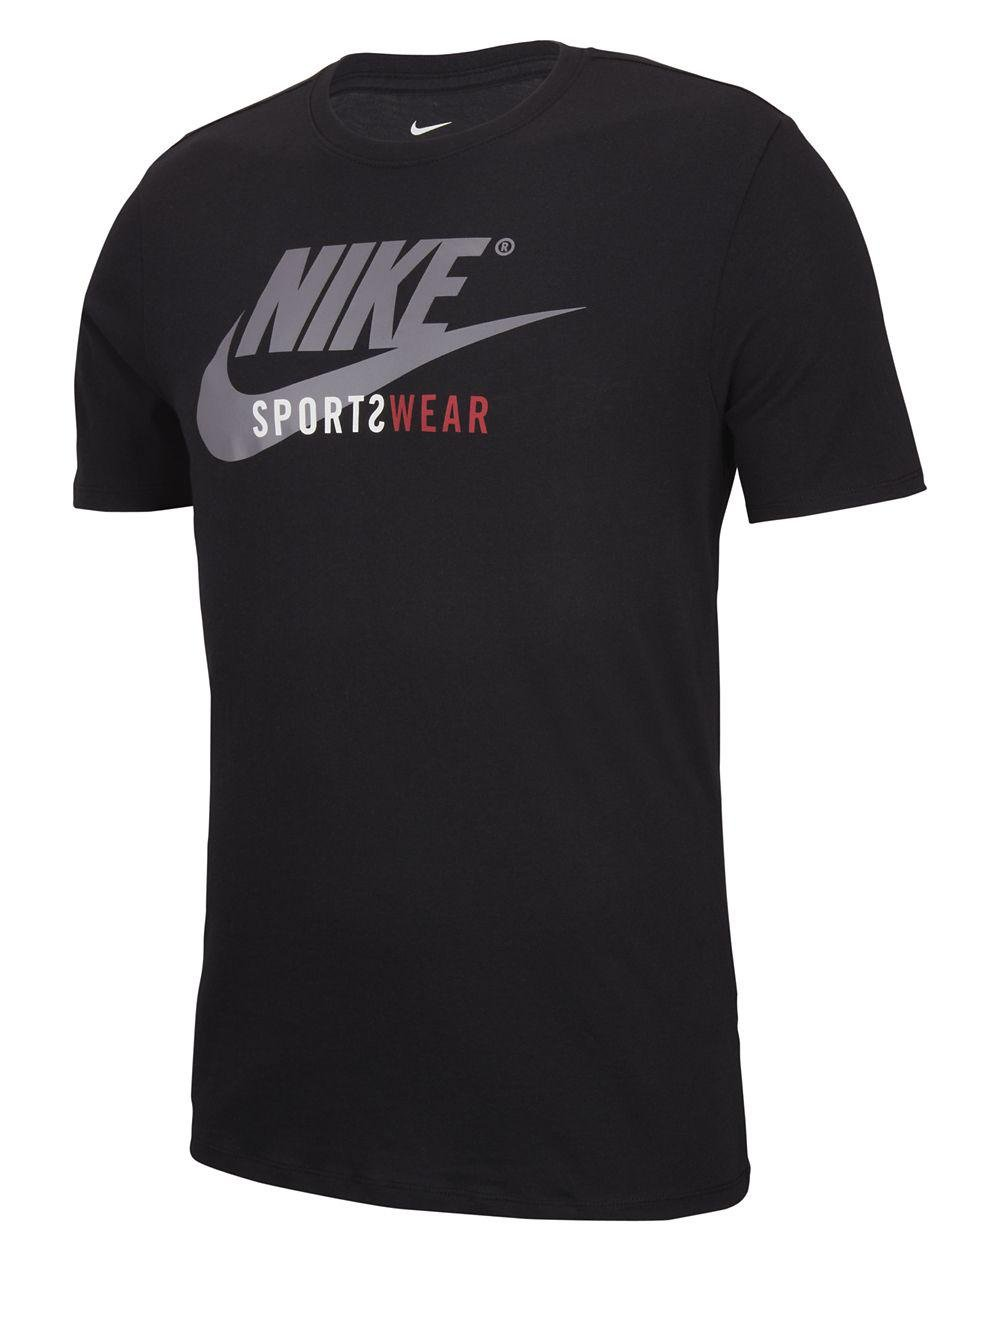 5c31ccddc24d Nike Swoosh Logo Graphic Tee in Black for Men - Lyst